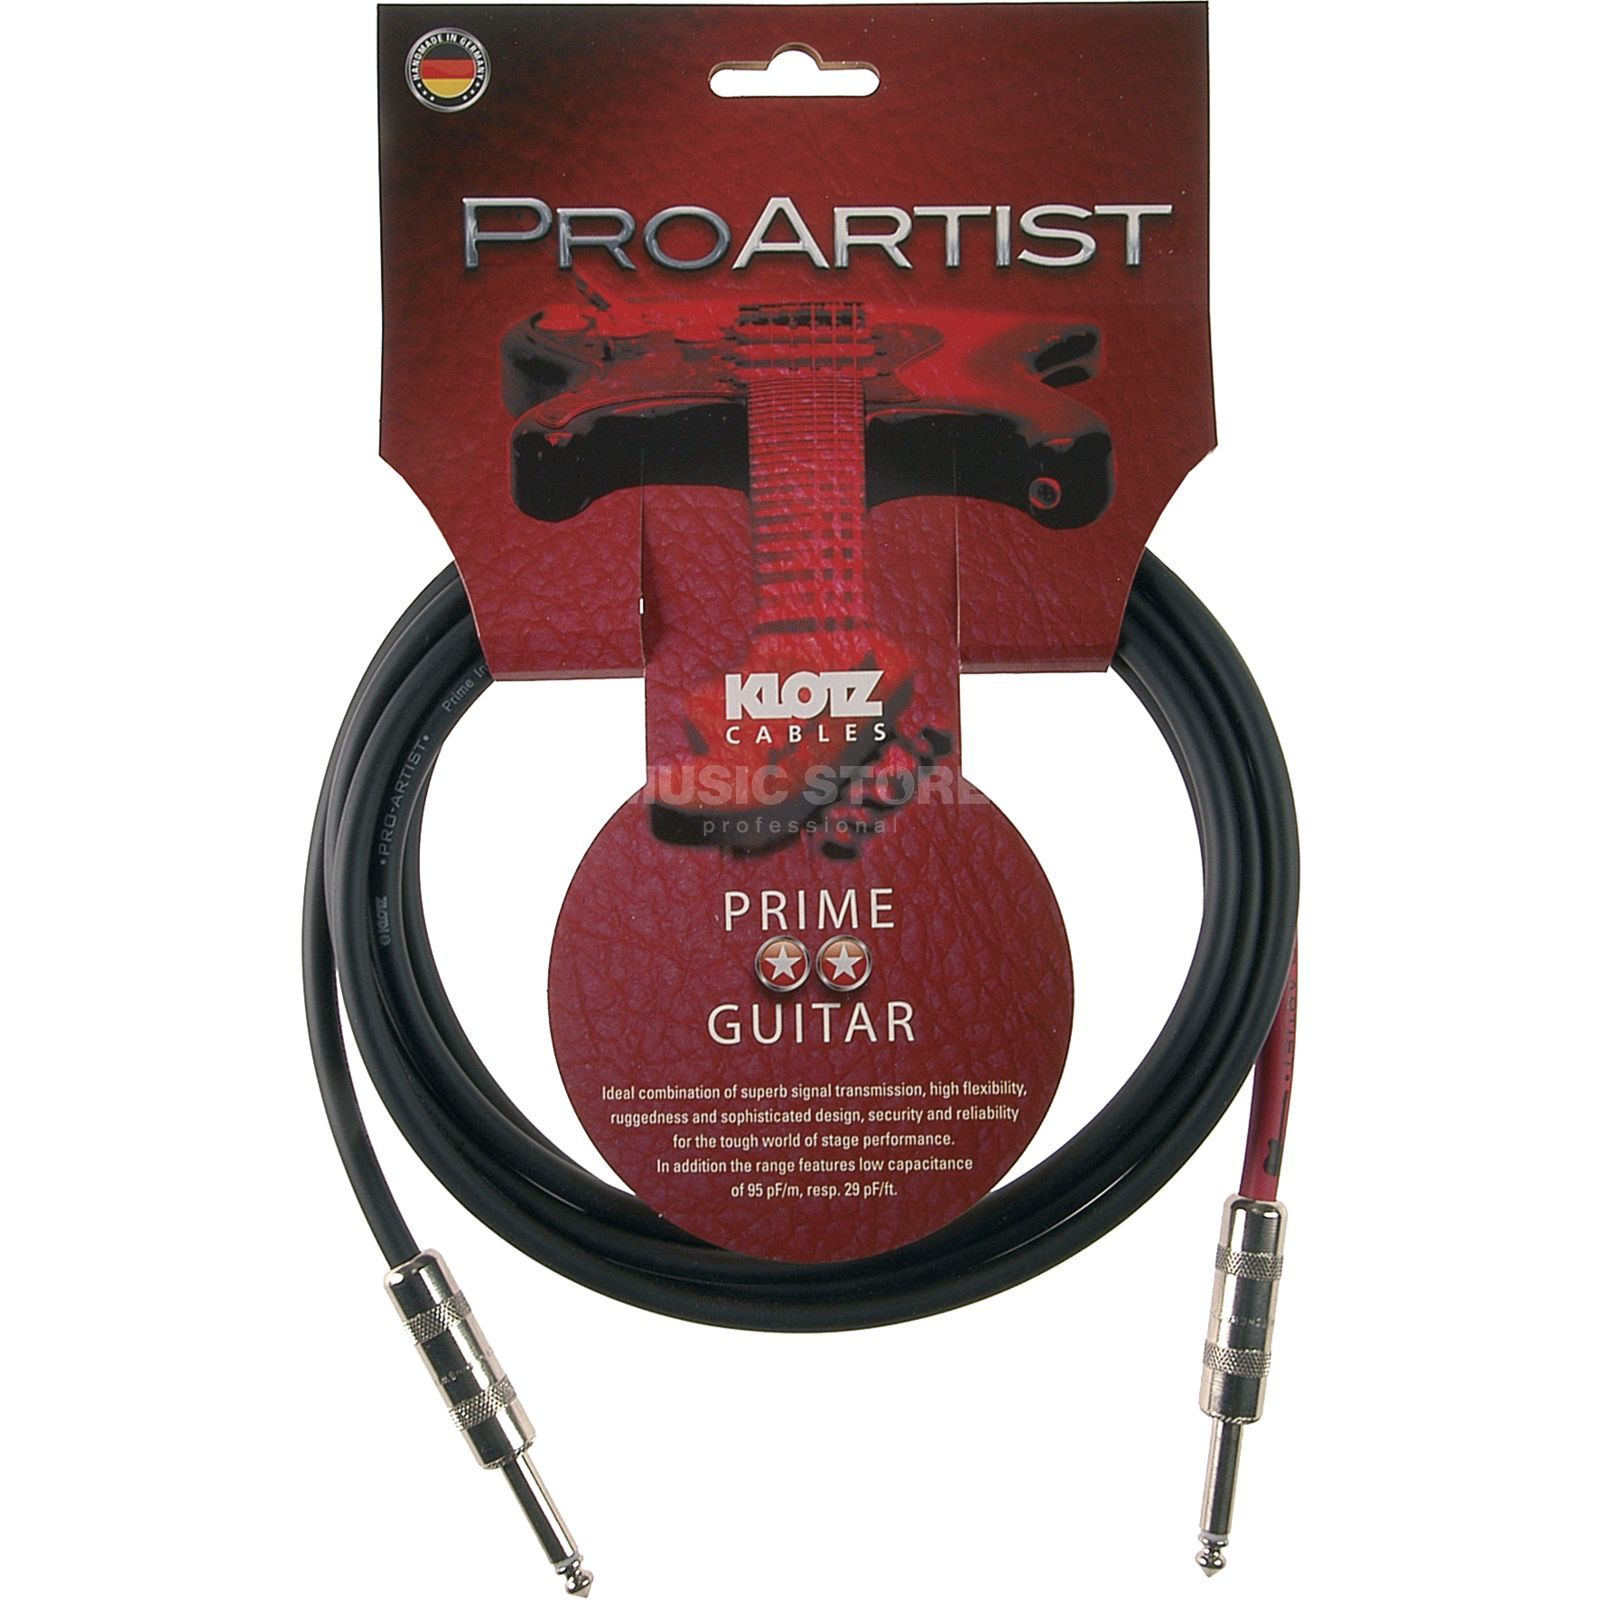 Klotz Instrument Cable,1,5m,straight Pro Artist, PROA015PP Product Image